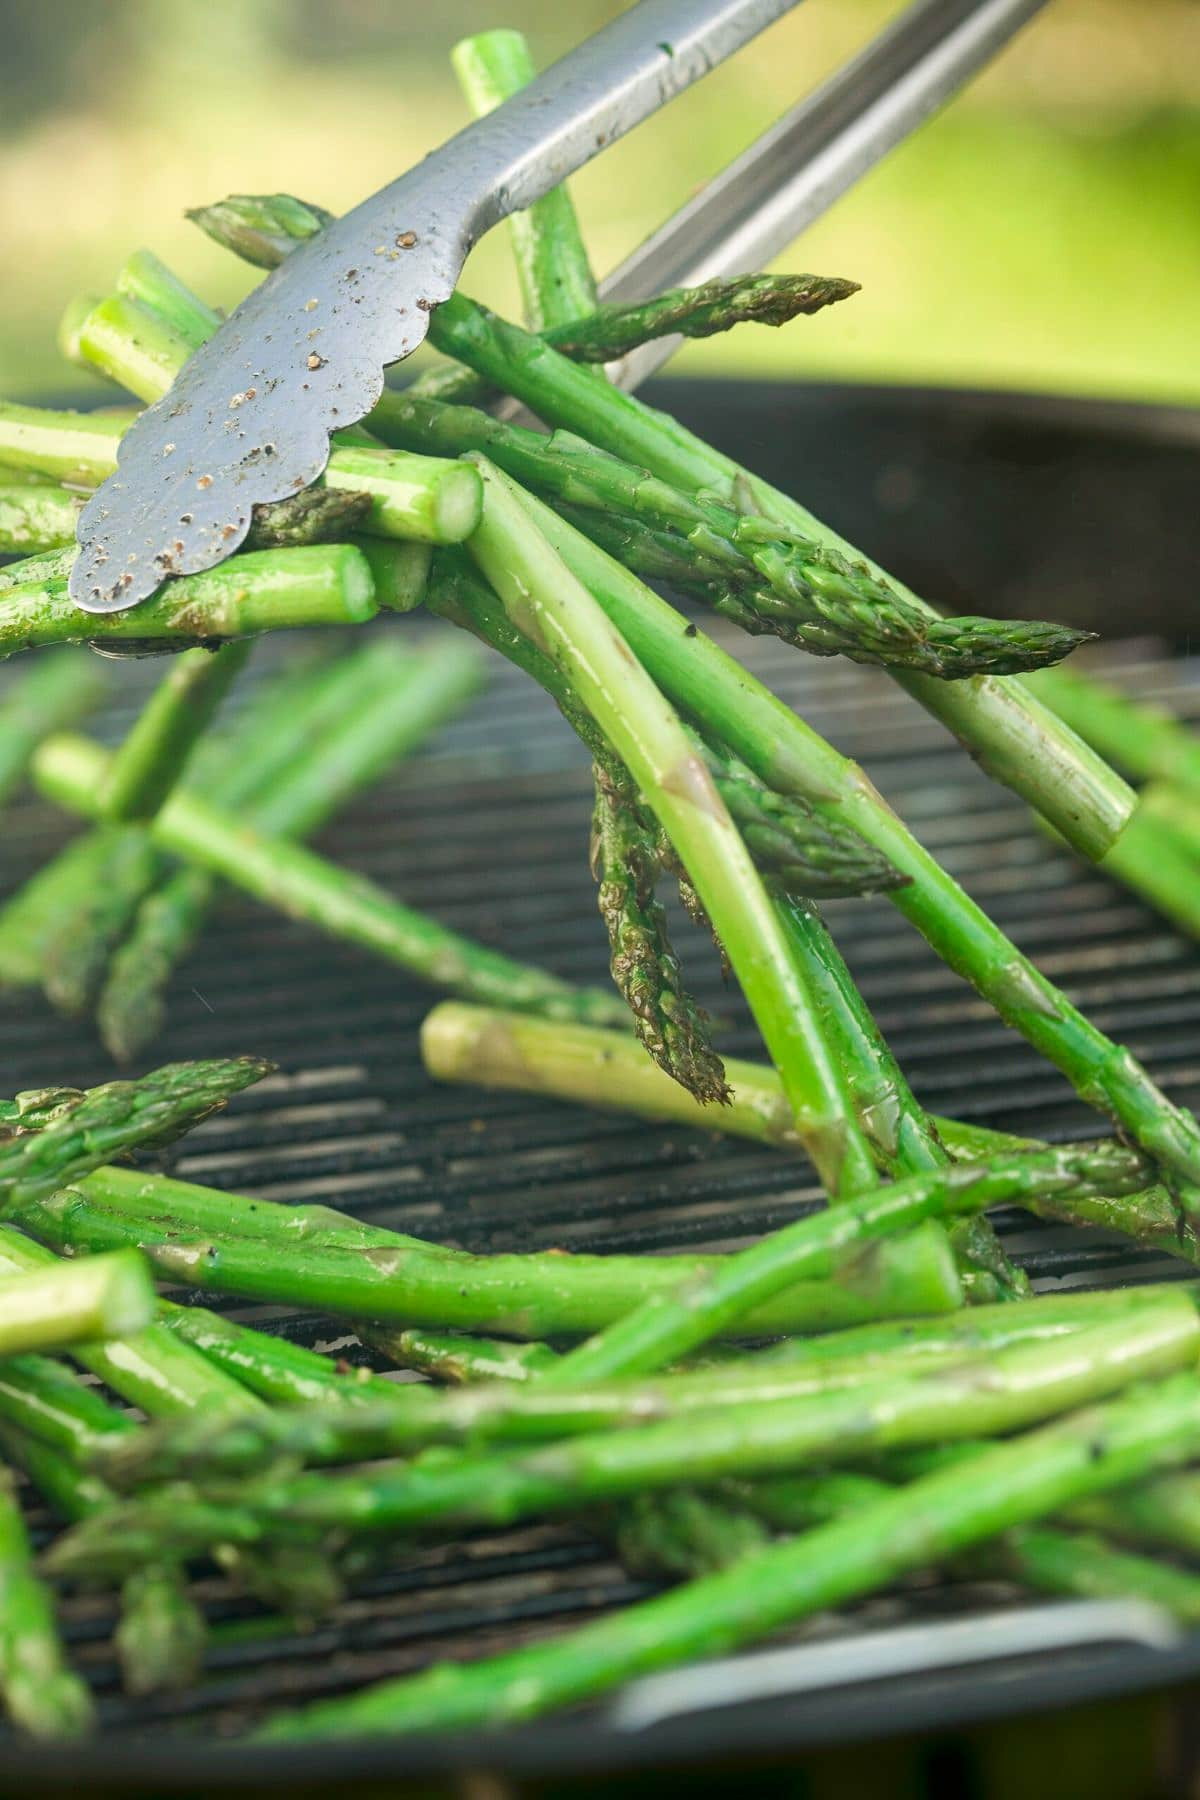 asparagus on grill being flipped by tongs